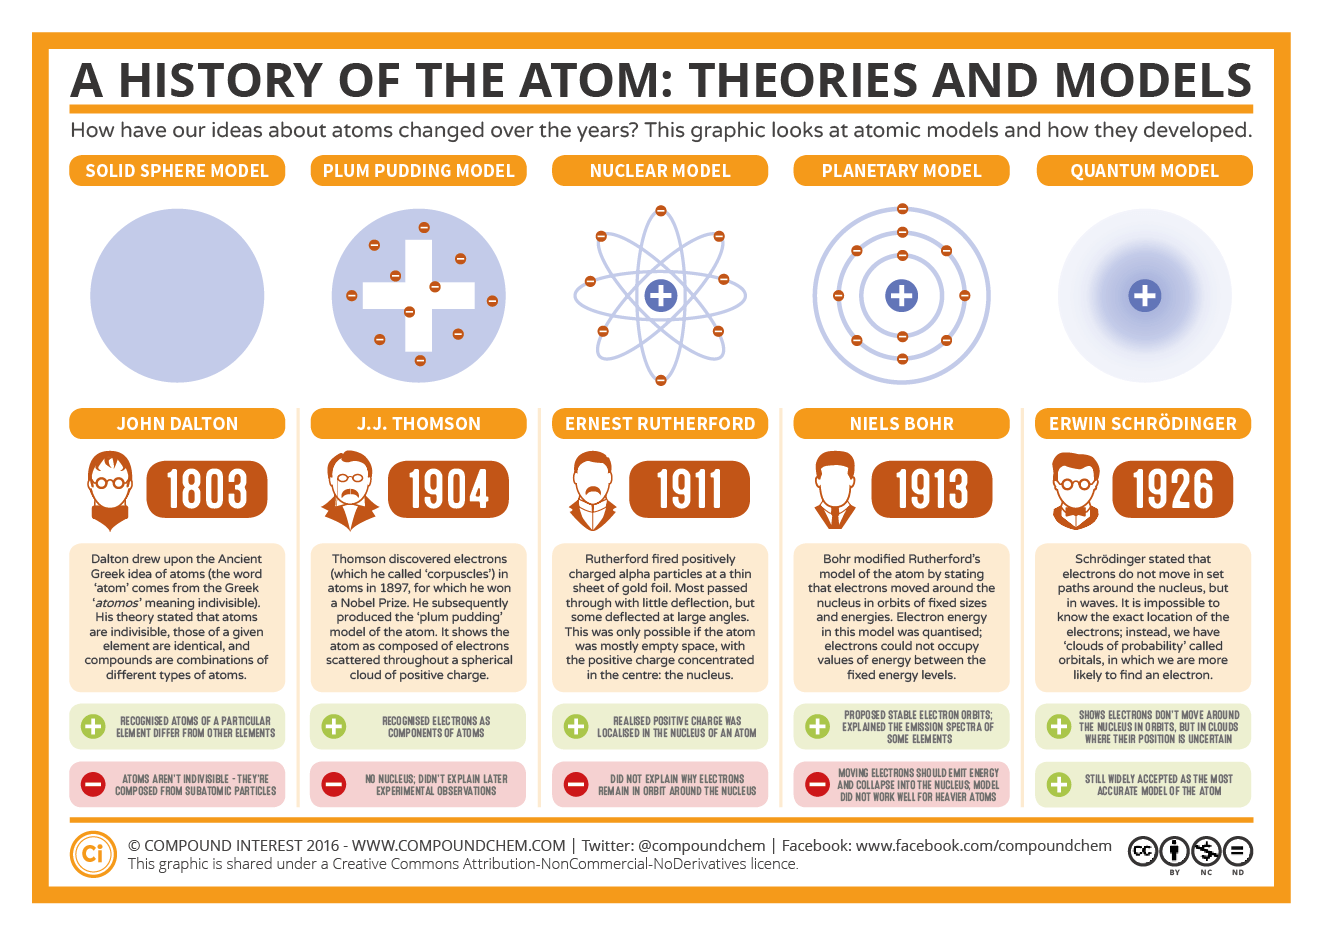 The History of the Atom: Theories and Models